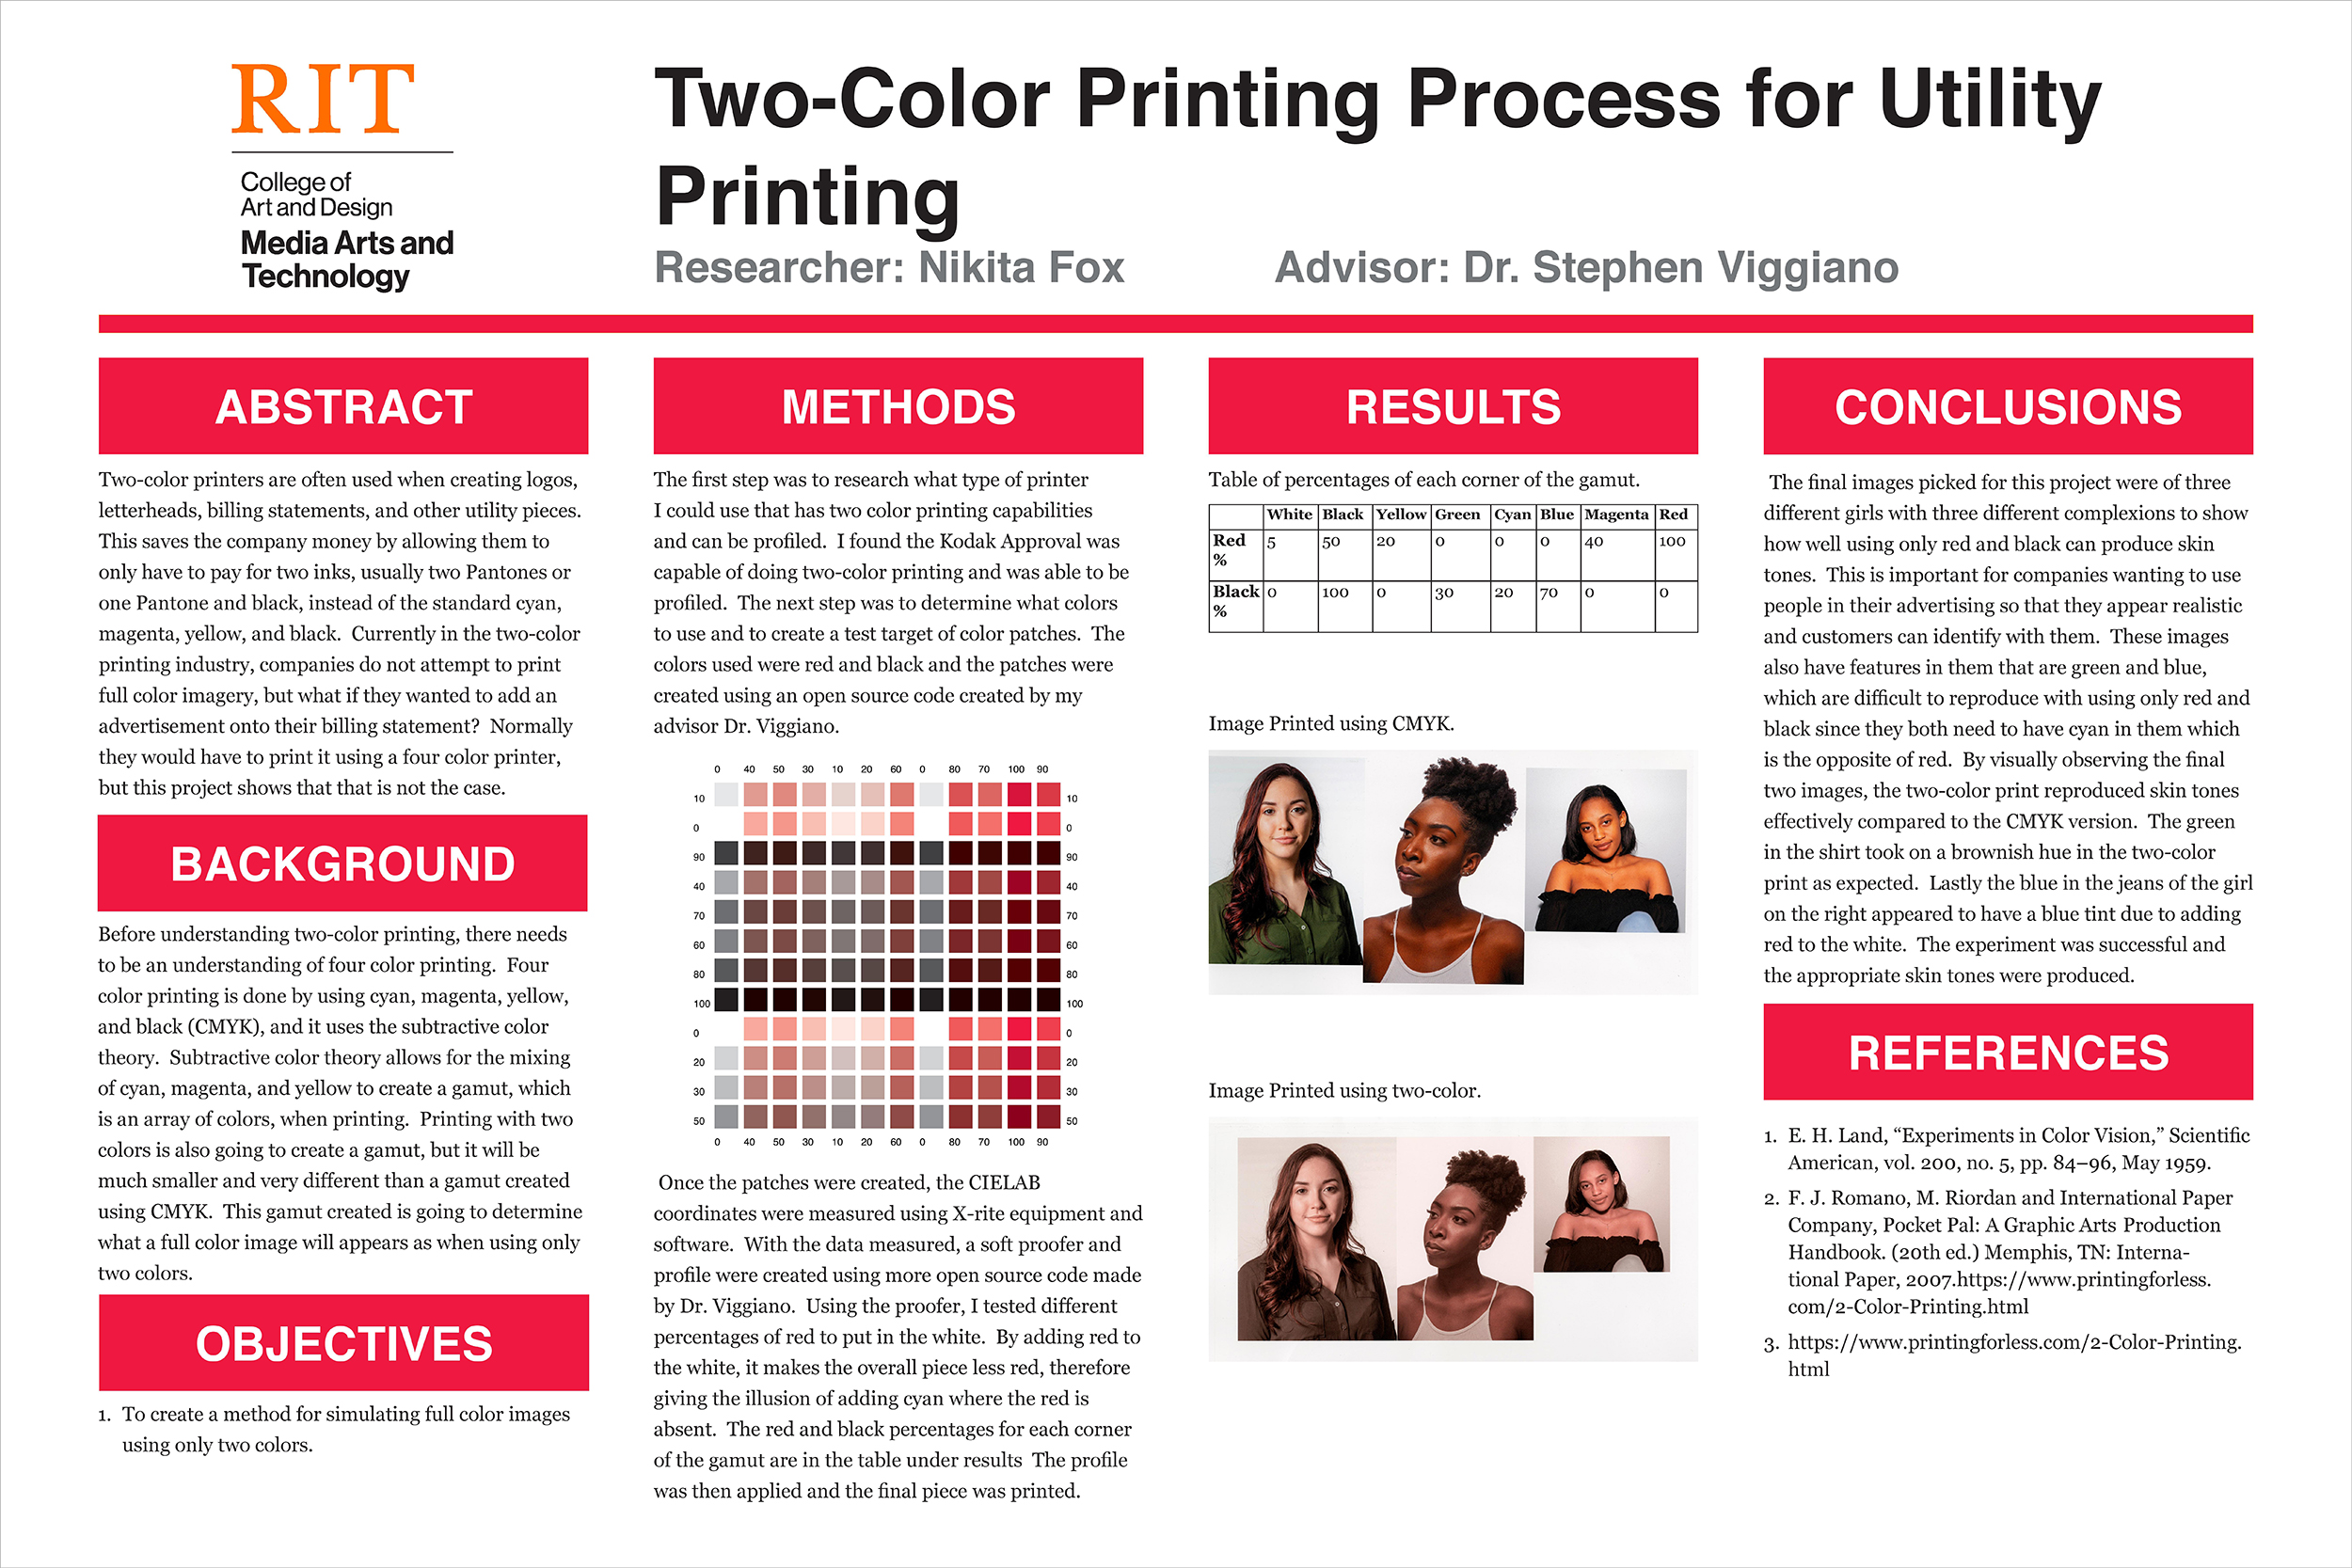 A poster showing, with text, the two-color printing process for utility printing.